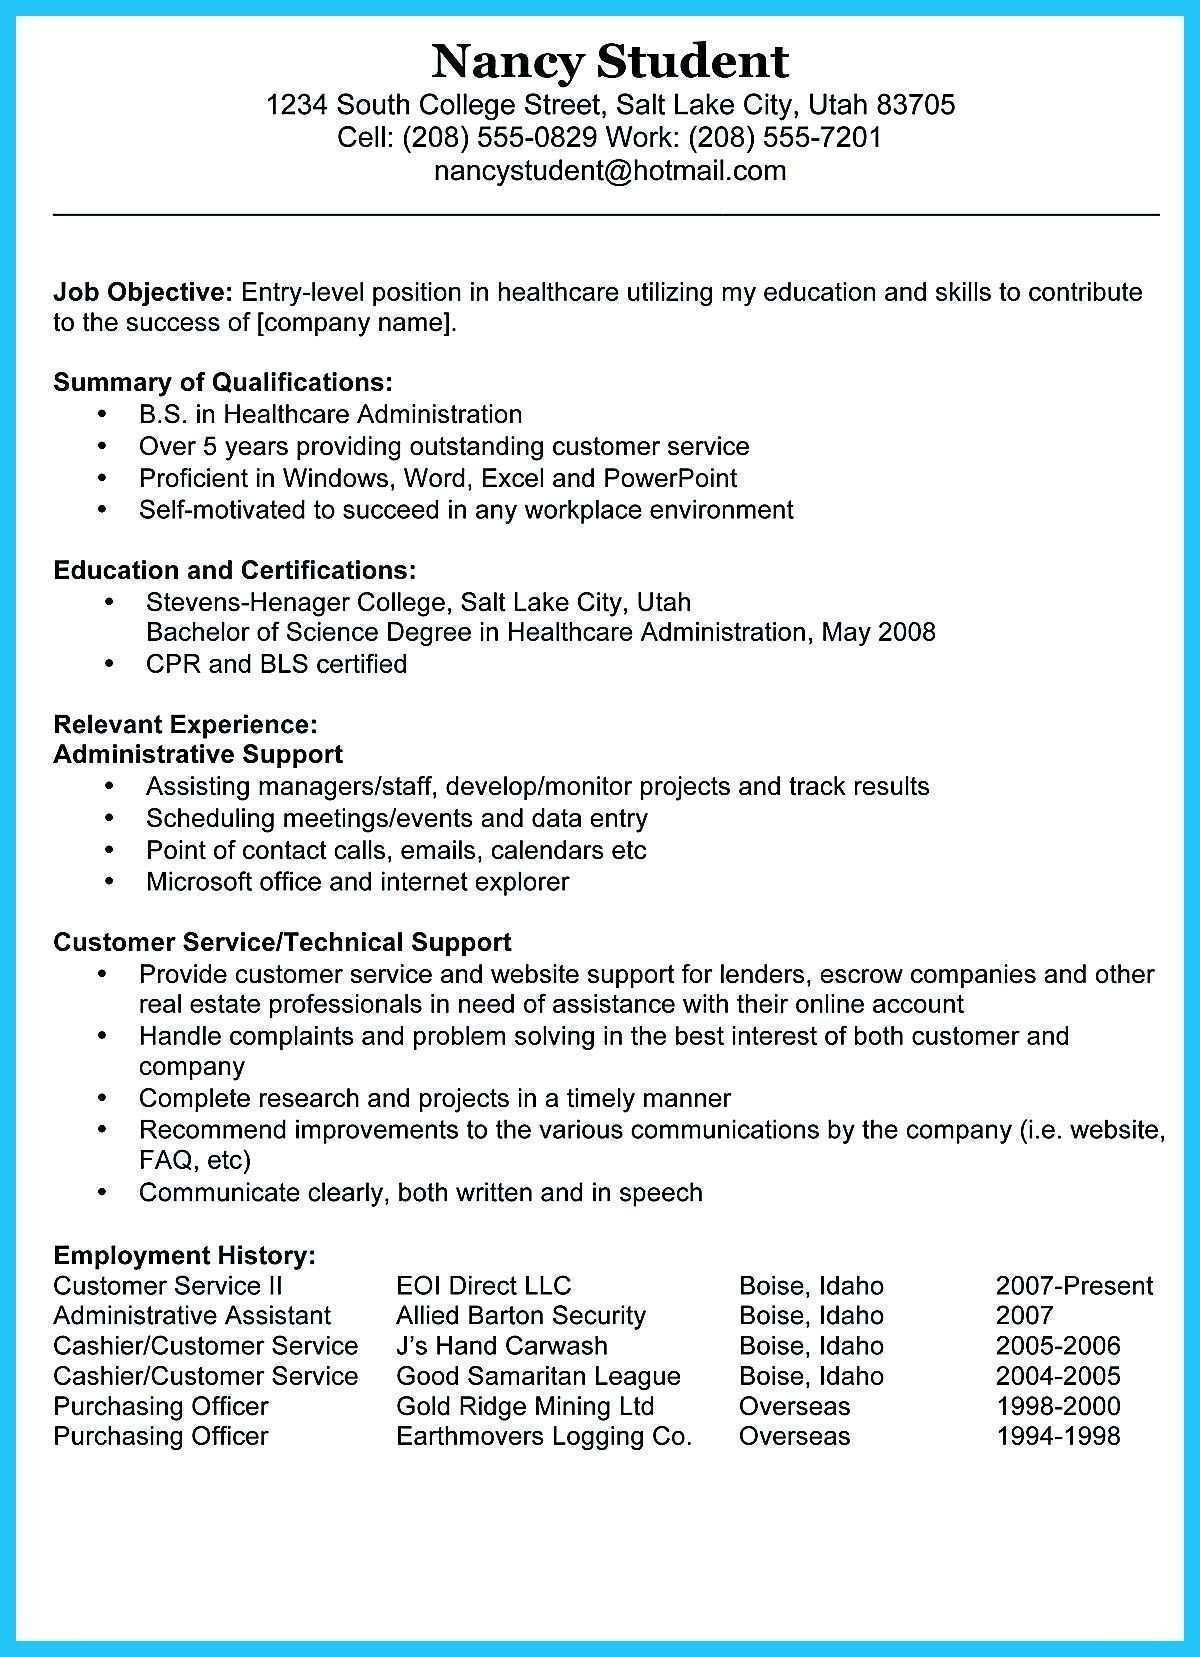 Best Buy Resume Unique Tutor Sample Resume Ideas New Resume Tutor